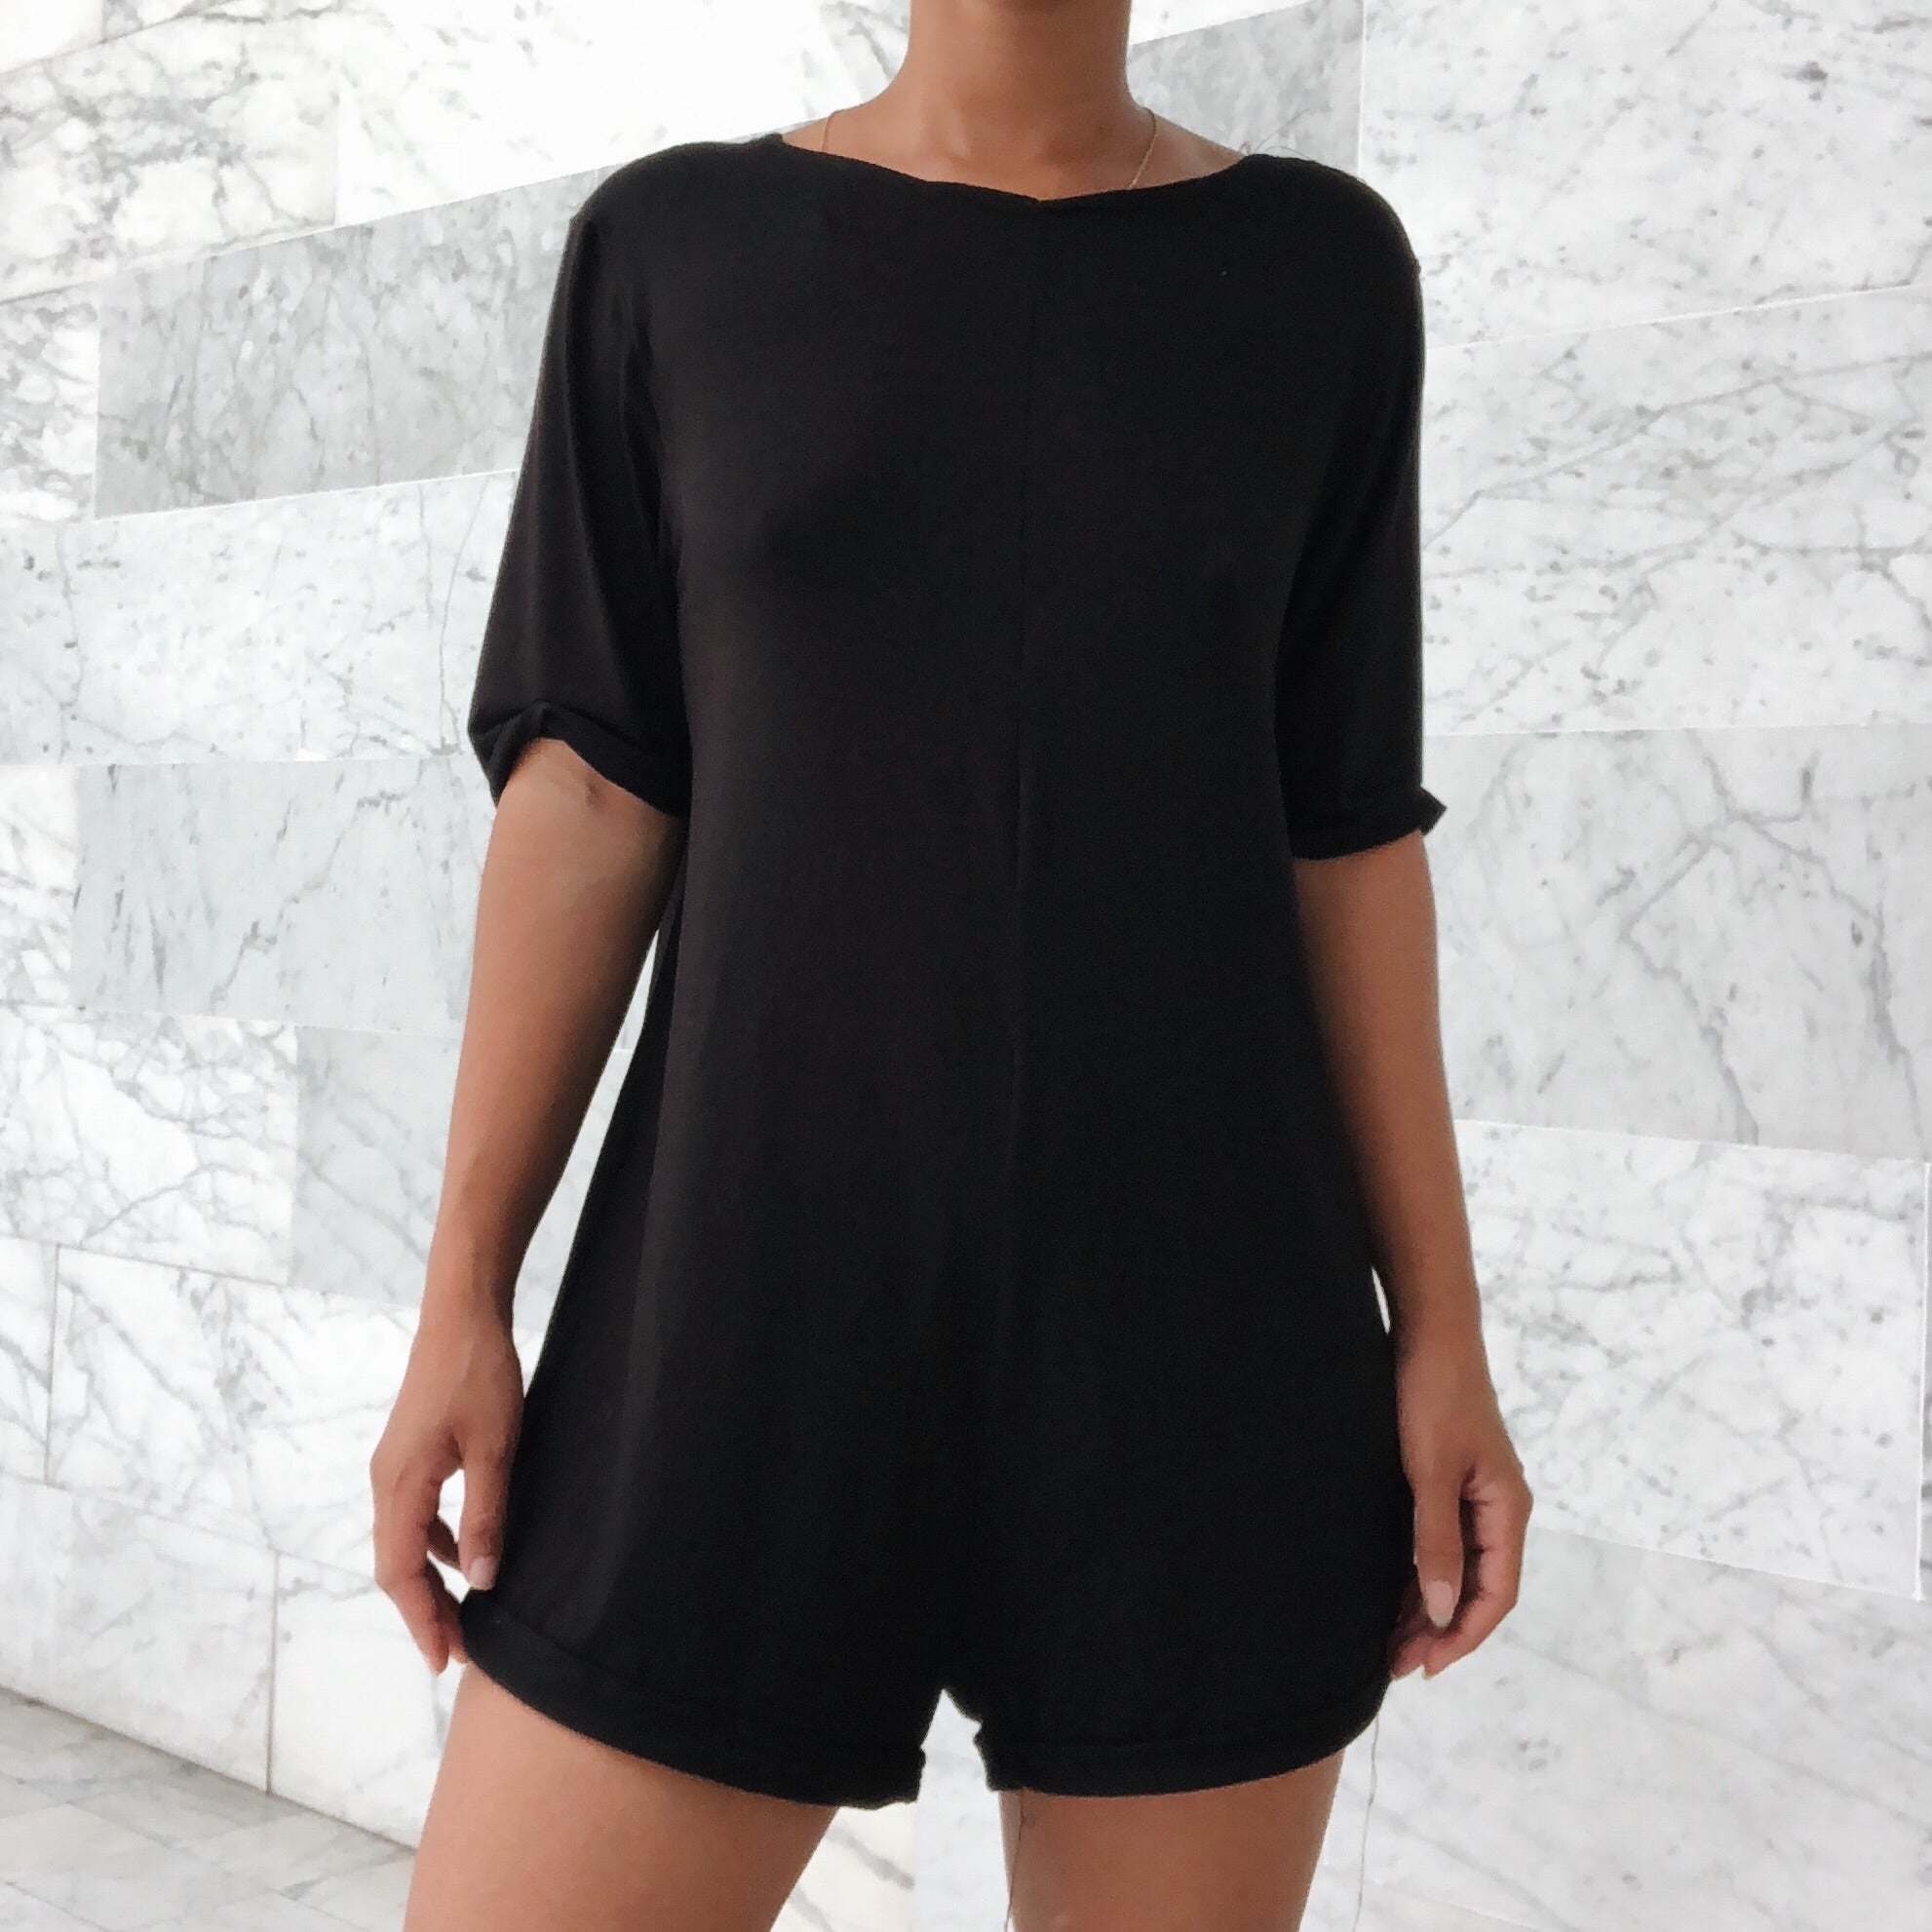 LEO ROMPER (3 colors)